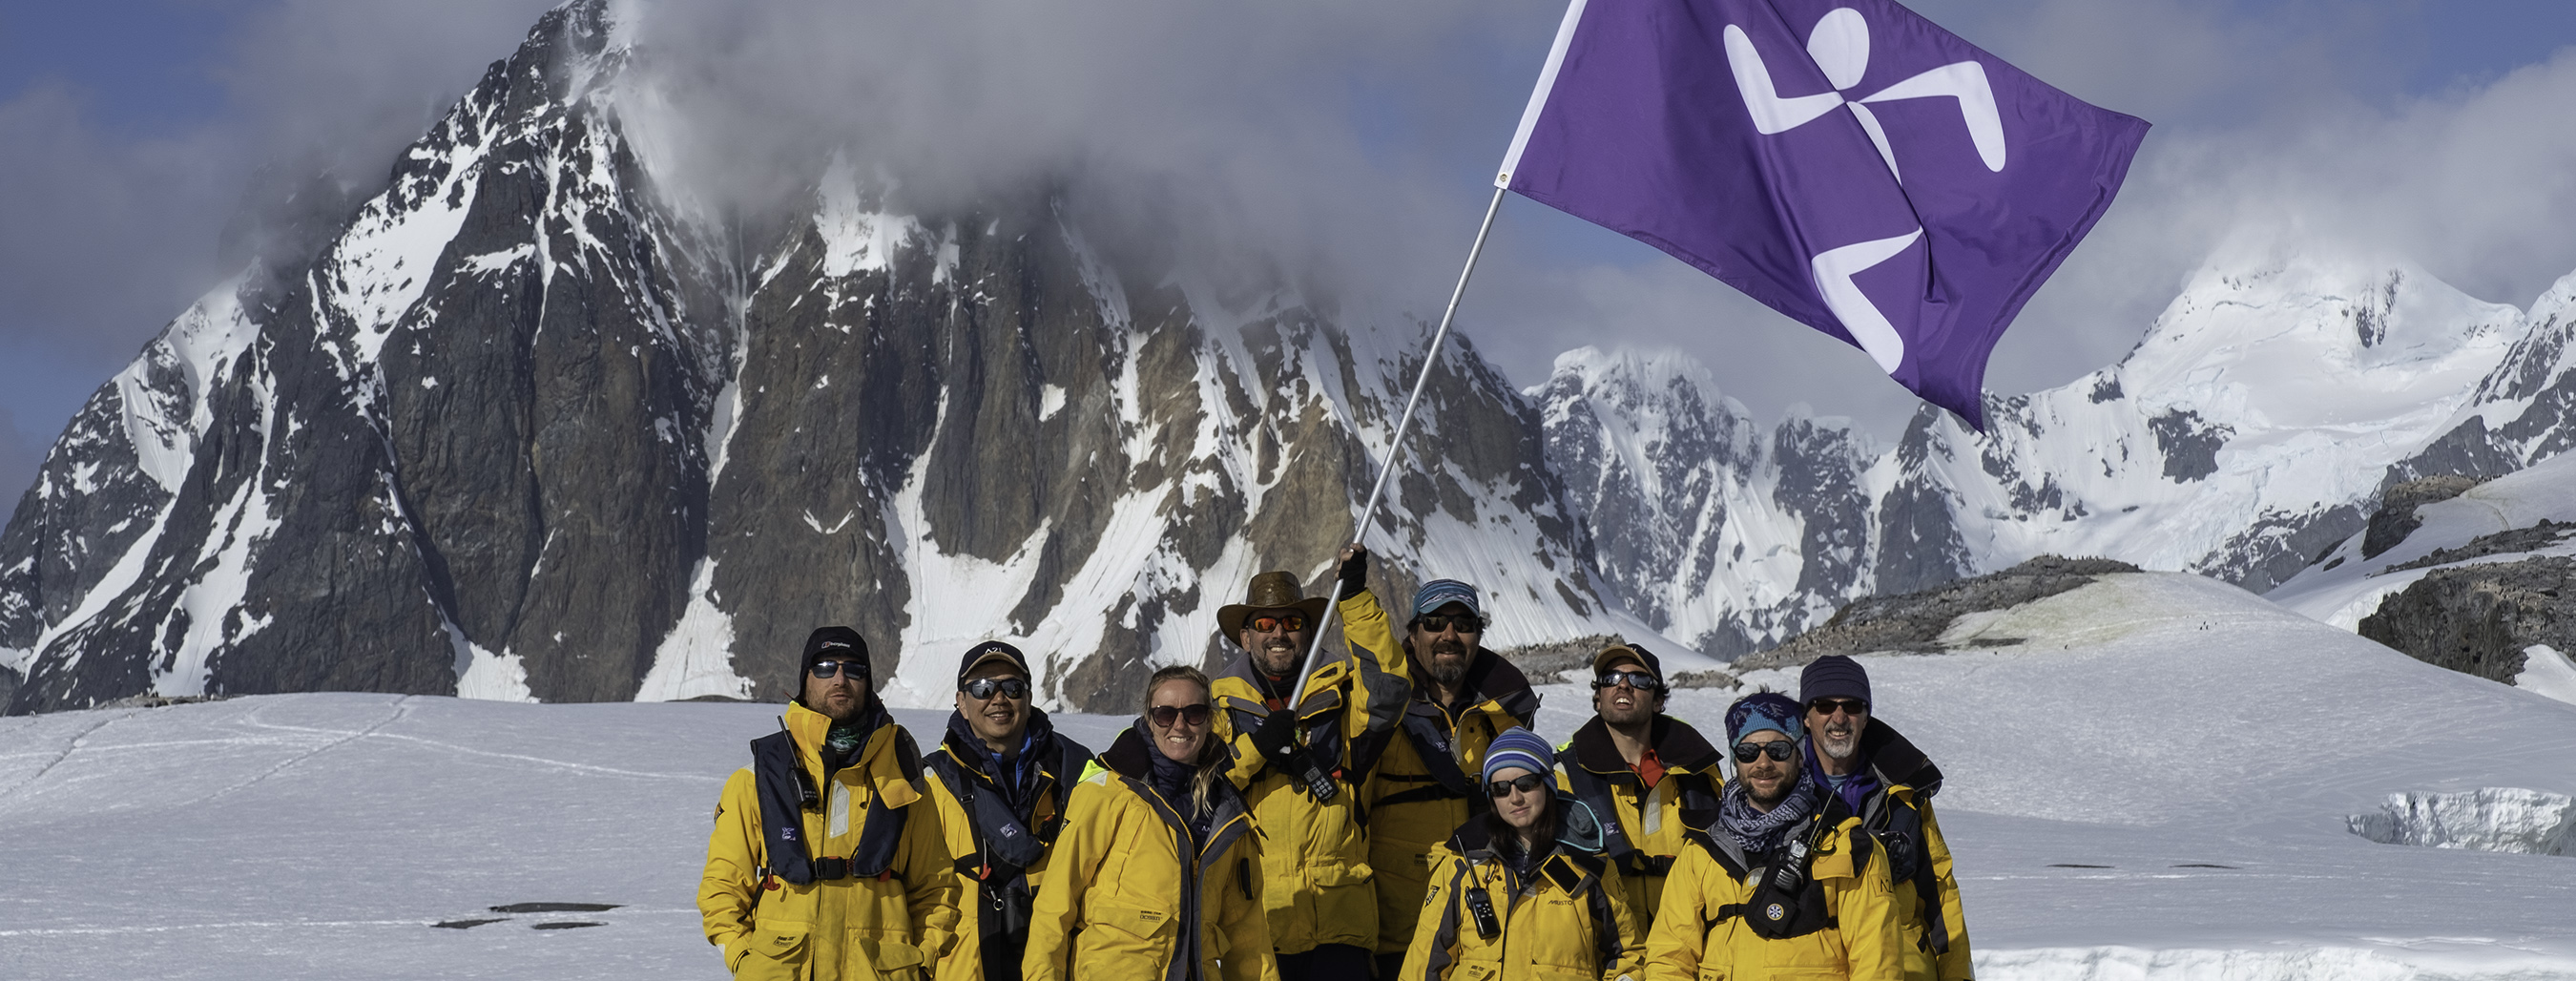 The Antarctic21 team guiding the Anytime Fitness flag